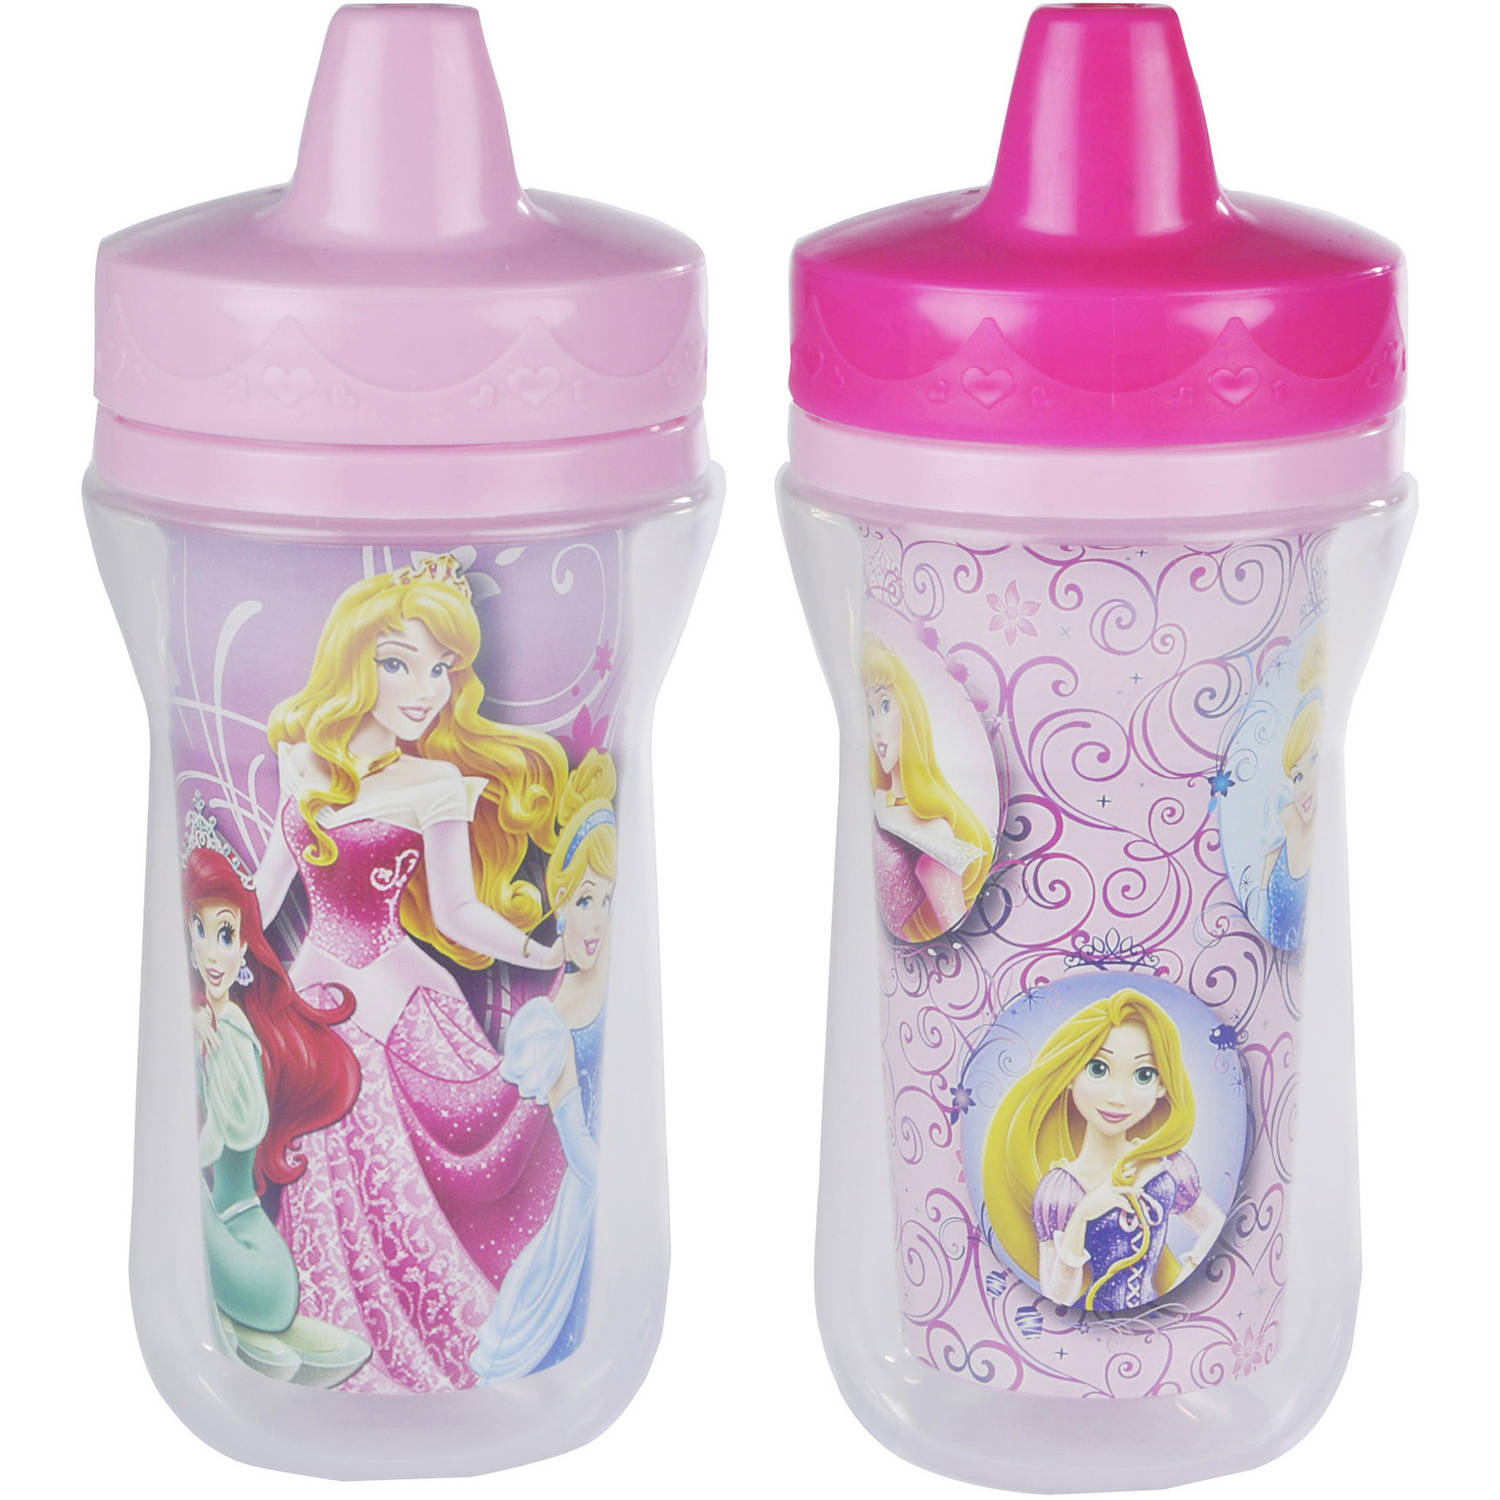 The First Years Meal Mates Princess Insulated 9 oz Sippy Cup, 2-Pack, BPA Free